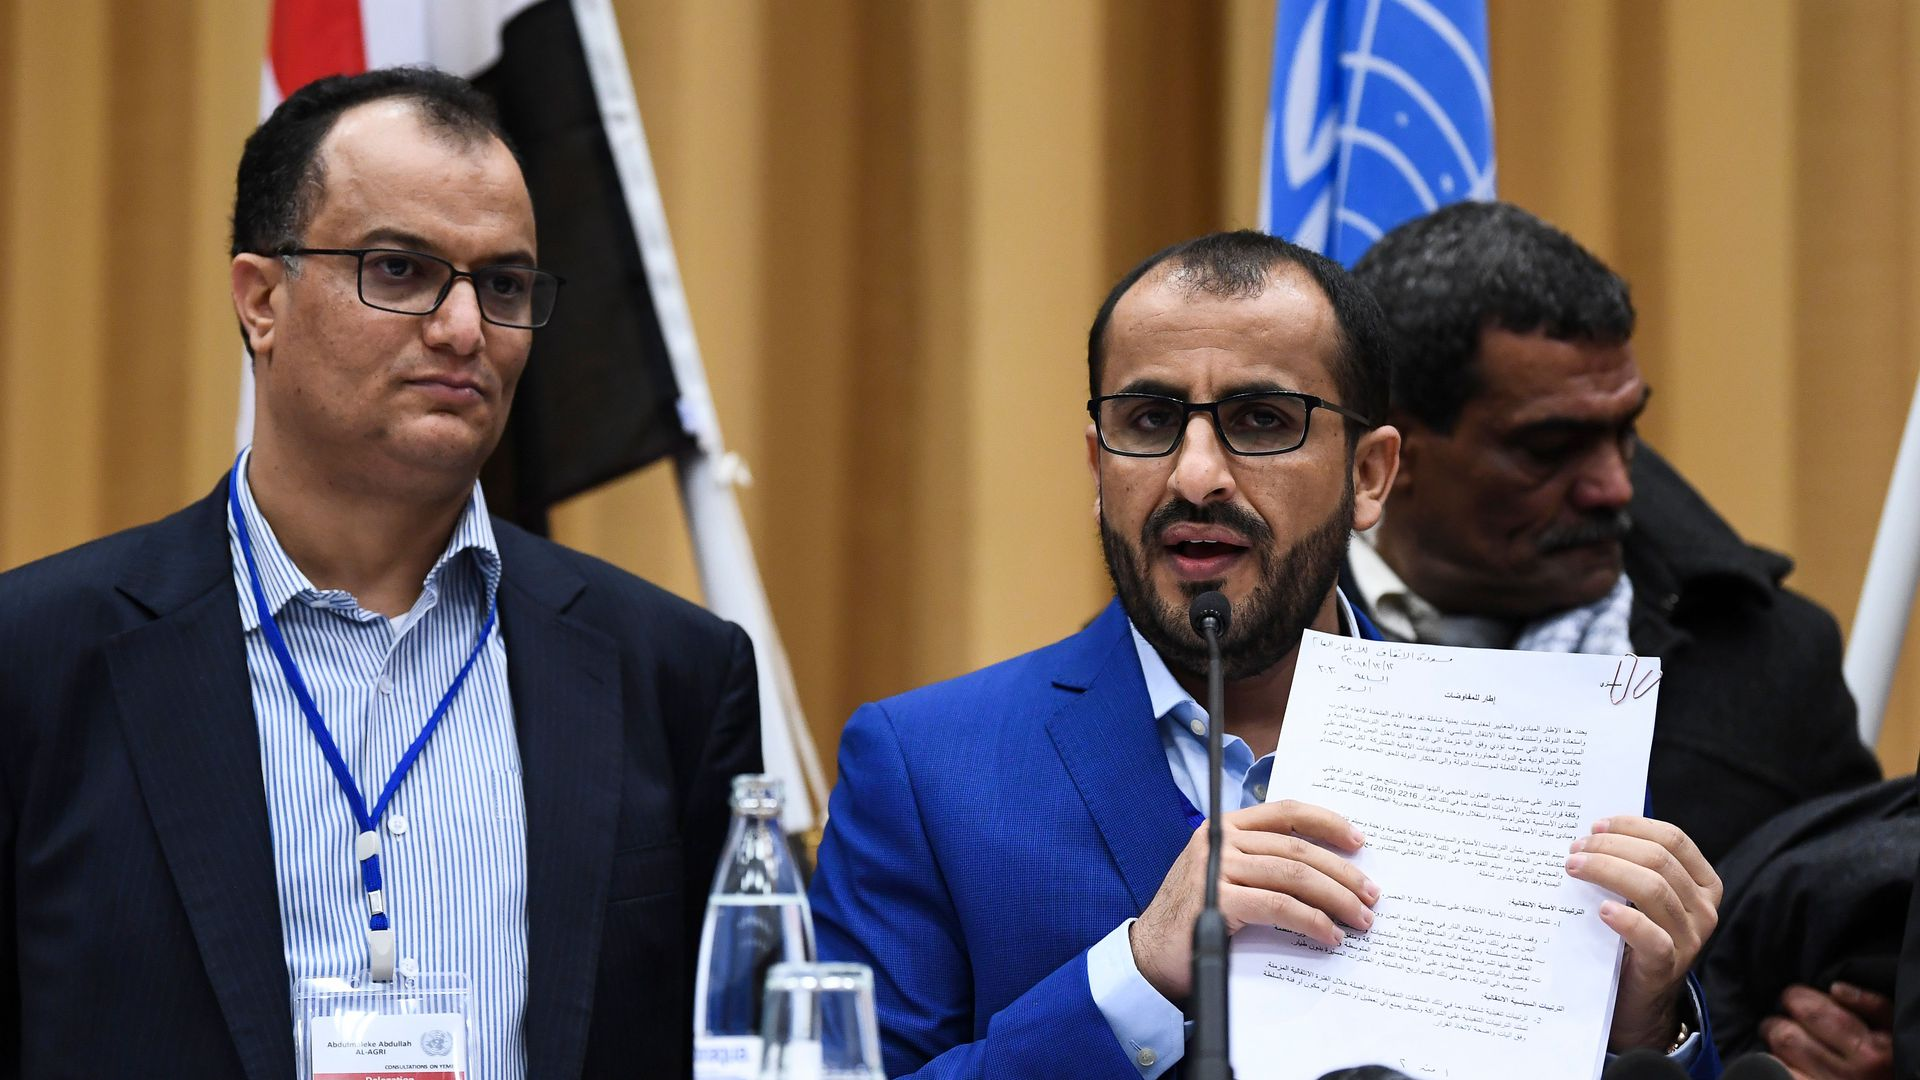 Rebel negotiator Mohammed Abdelsalam holds a press conference together with members of the delegation following the peace consultations taking place near Stockholm